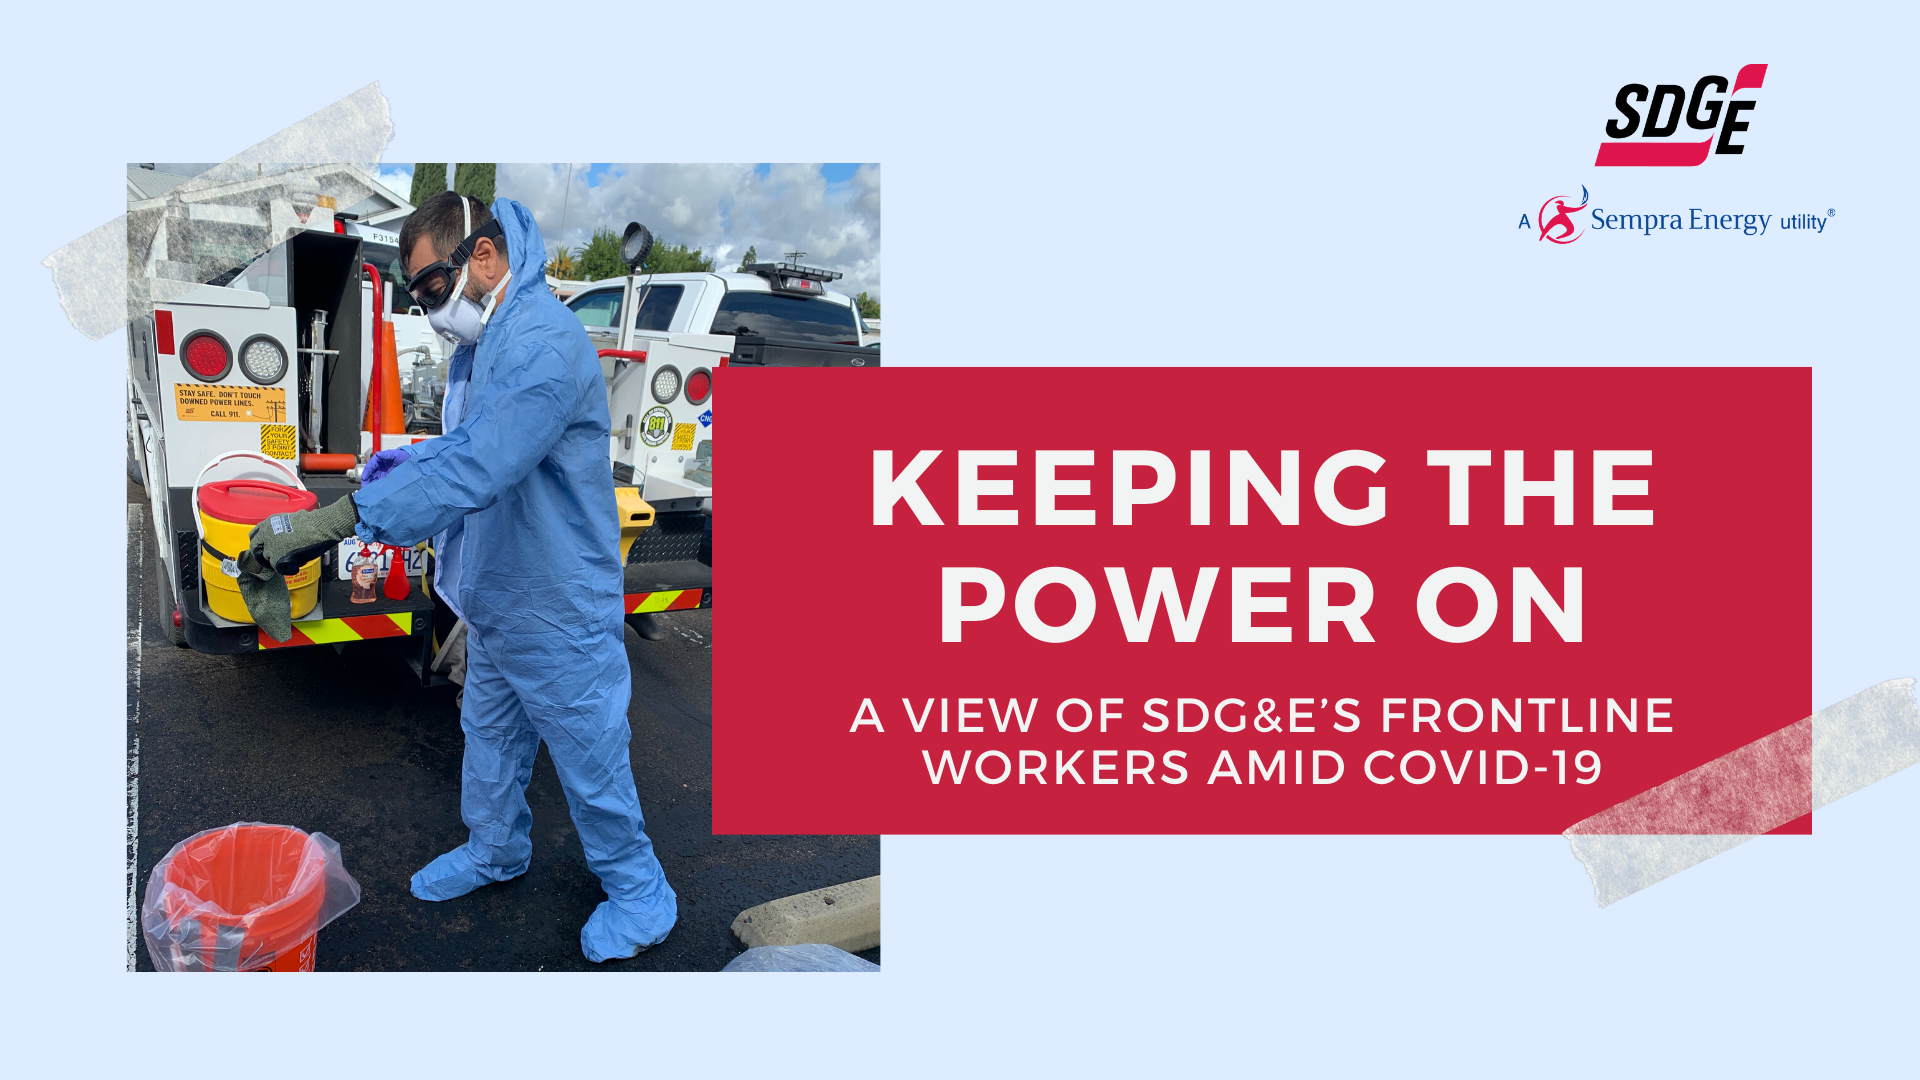 Keeping the Power On - A View of SDG&E's Frontline Workers Amid COVID-19